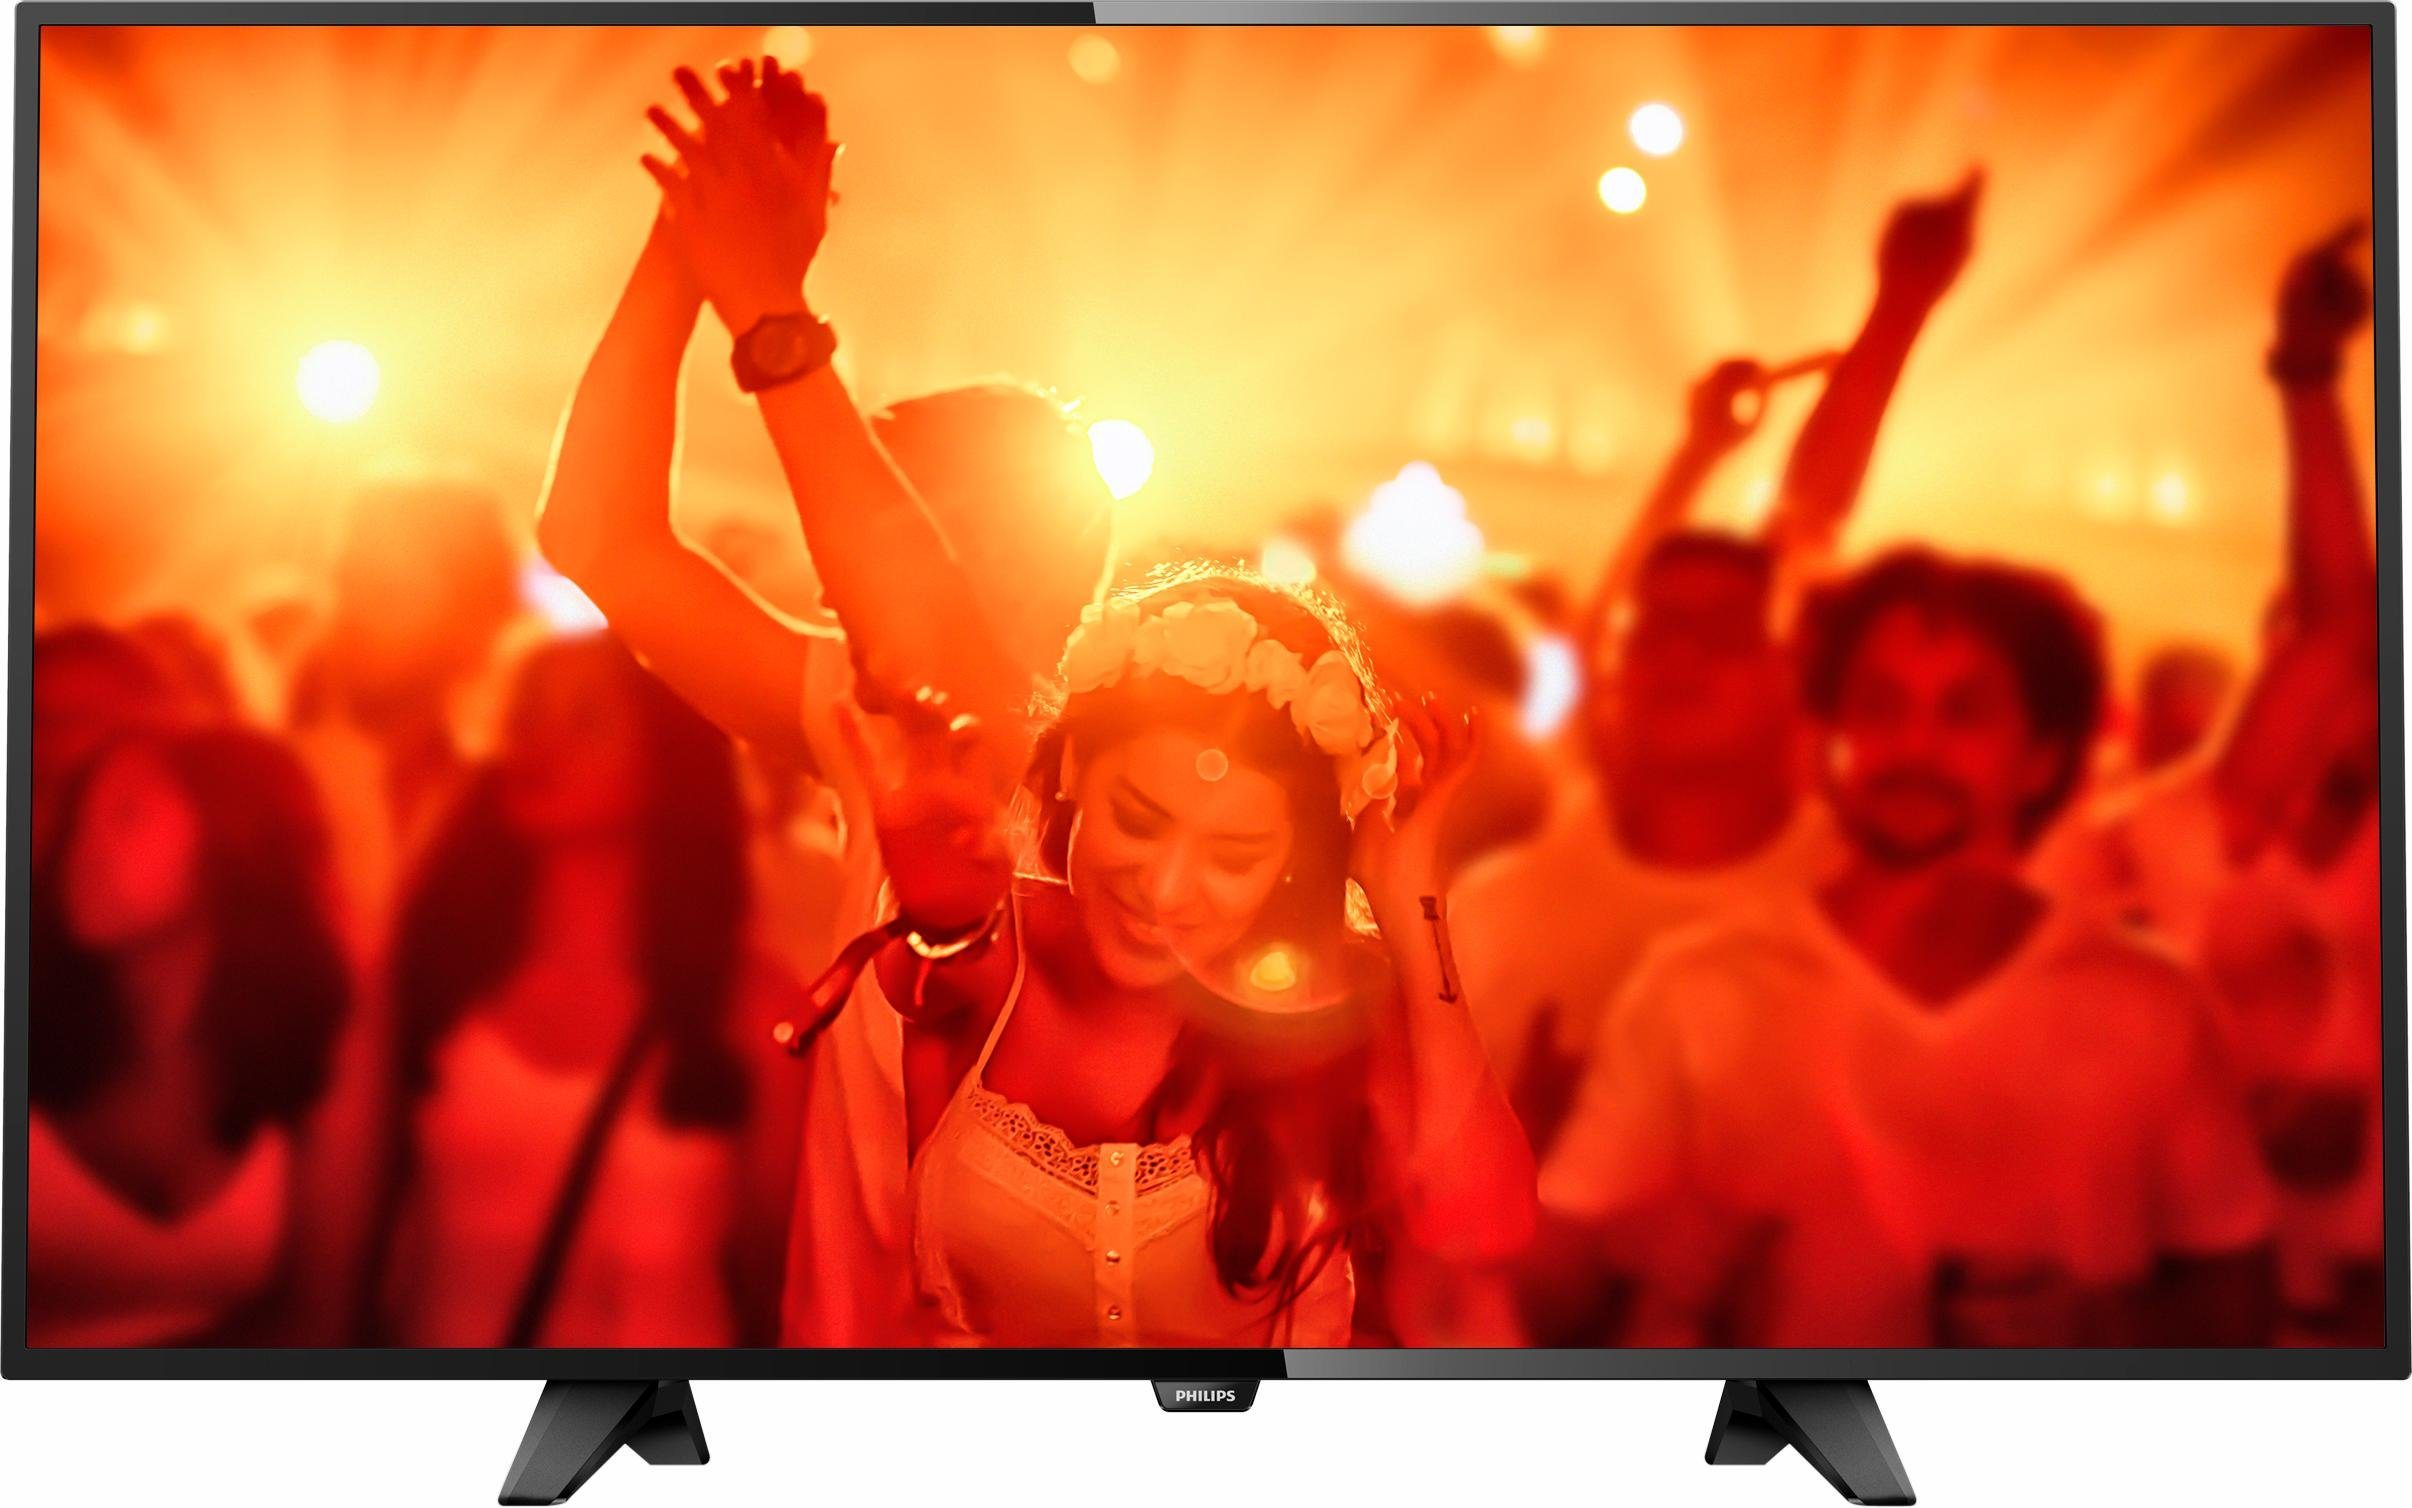 Philips 32PHS4131, LED Fernseher, 80 cm (32 Zoll), HD-ready 720p